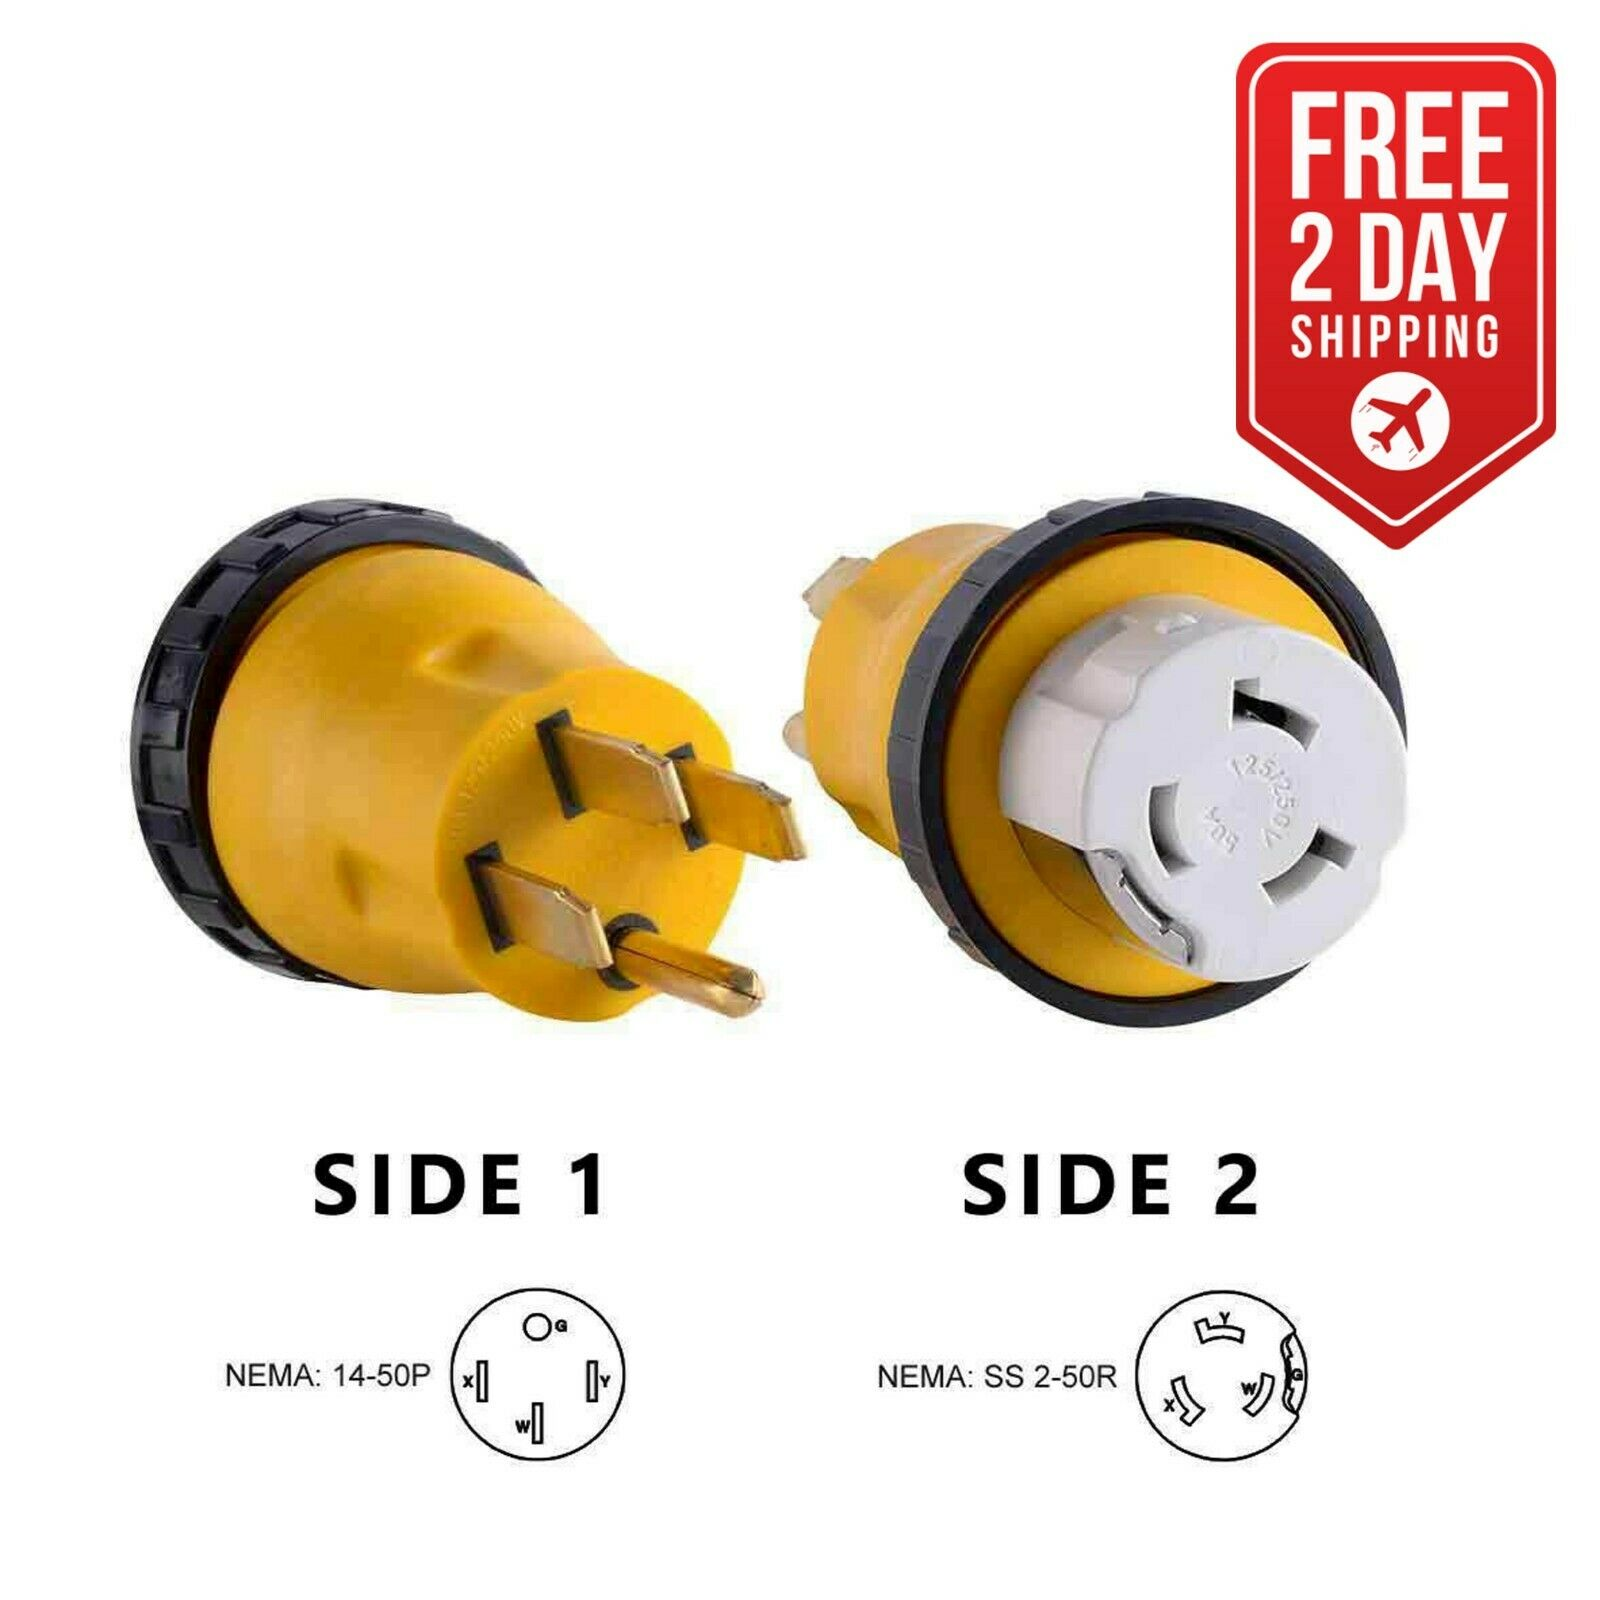 Rv Power Cord Adapter 50 Amp Male To Twist Lock Female Camper Grip Plug 125v 30 15 Detachable 1 Of 3 See More